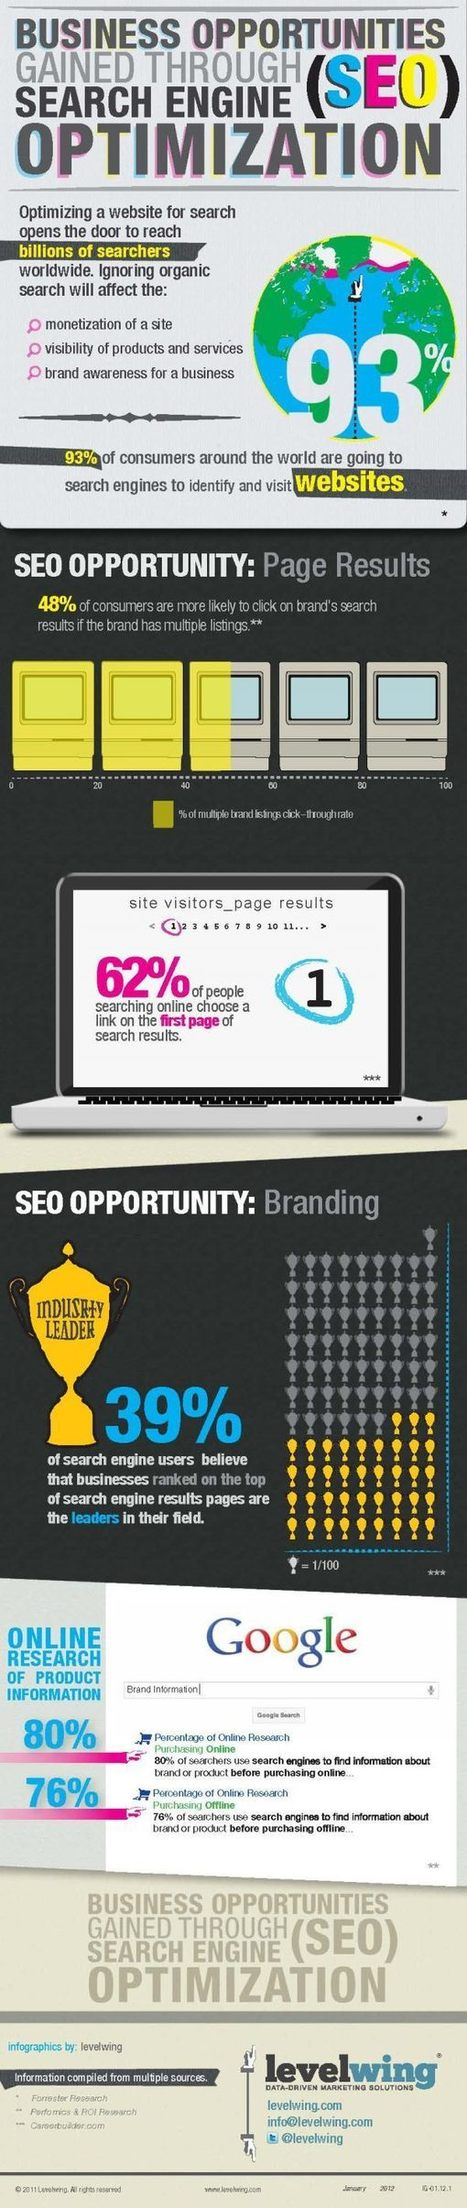 SEO Infographic – Brand Identity and Recognition in Search Results | Personal branding and social media | Scoop.it